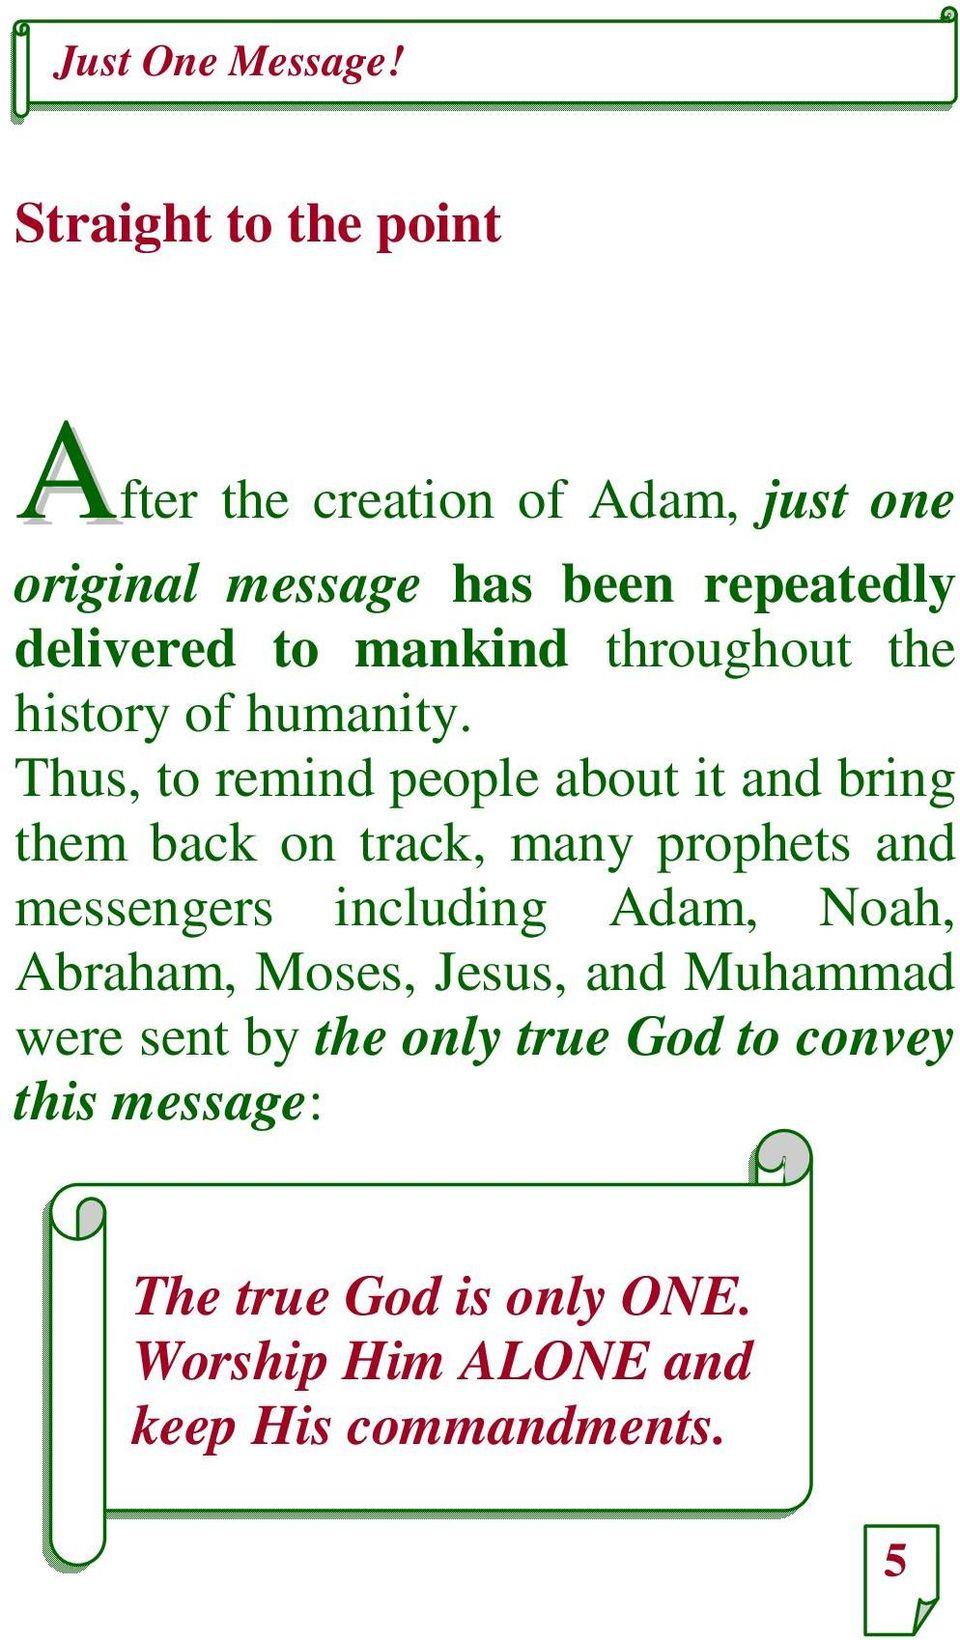 Thus, to remind people about it and bring them back on track, many prophets and messengers including Adam,